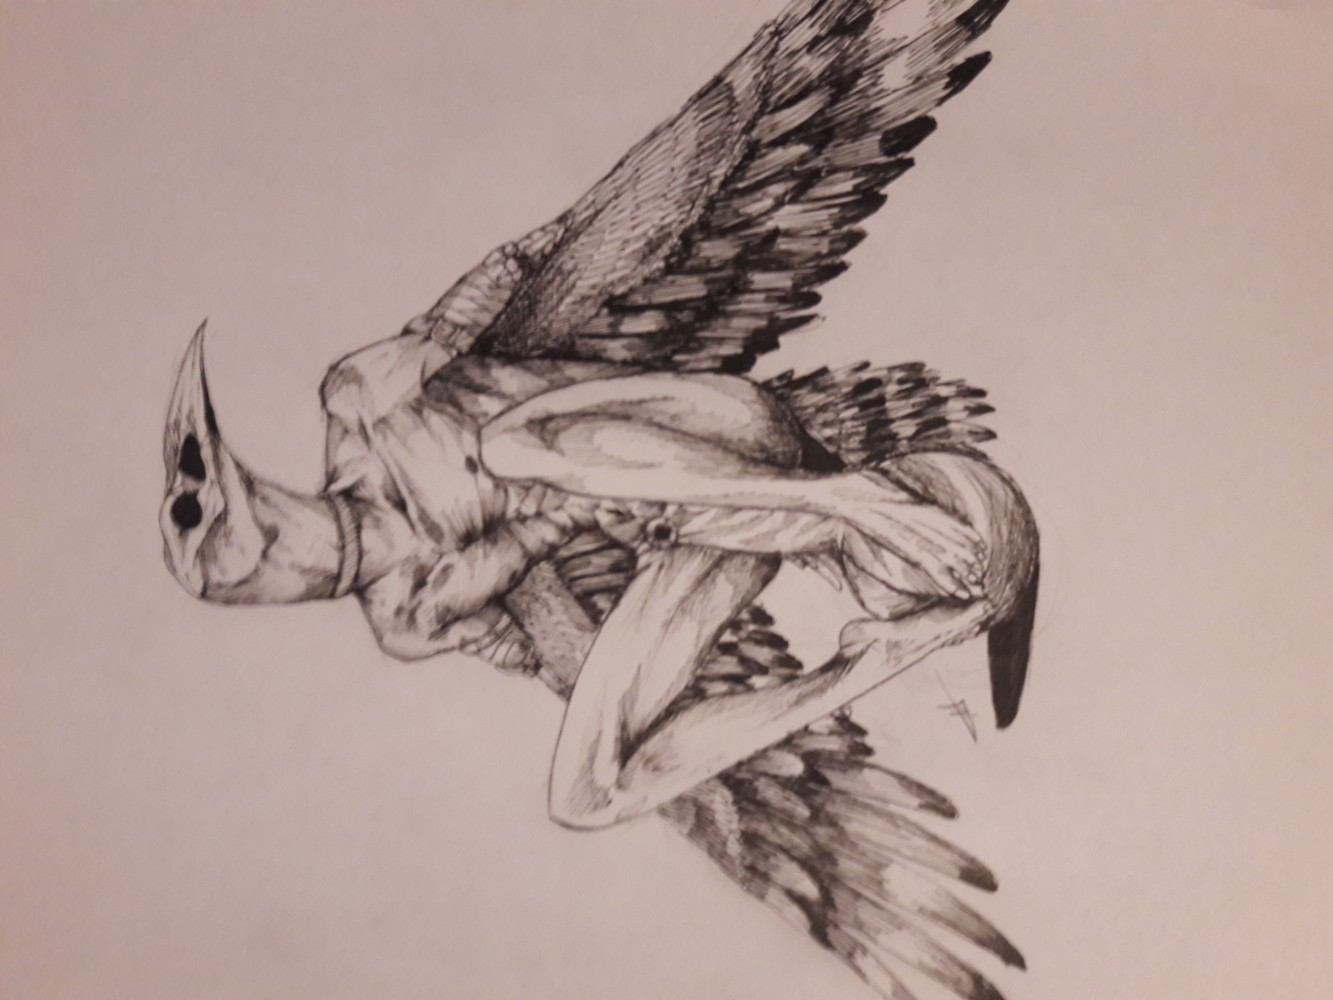 main-image-Bird thing uploaded by MikaeART